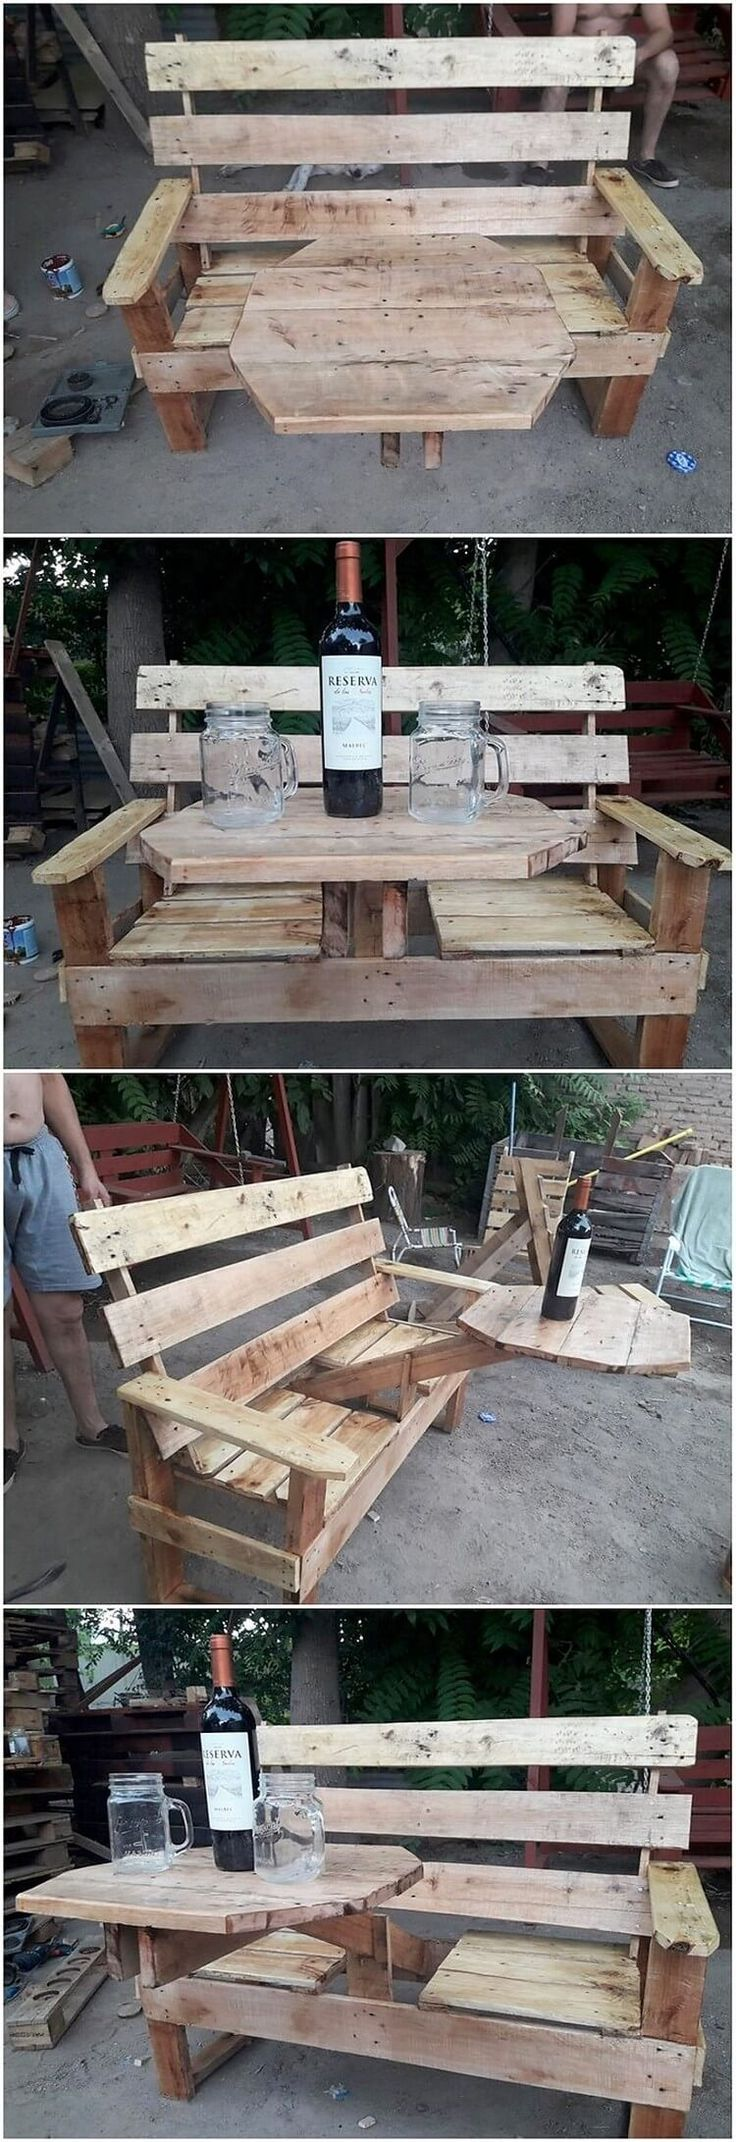 This is a pallet bench creation work that is so elegantly designed out. It is being functionally added with the wine rack table work inside it, that make it overall come out to be a complete furniture idea for your house use.